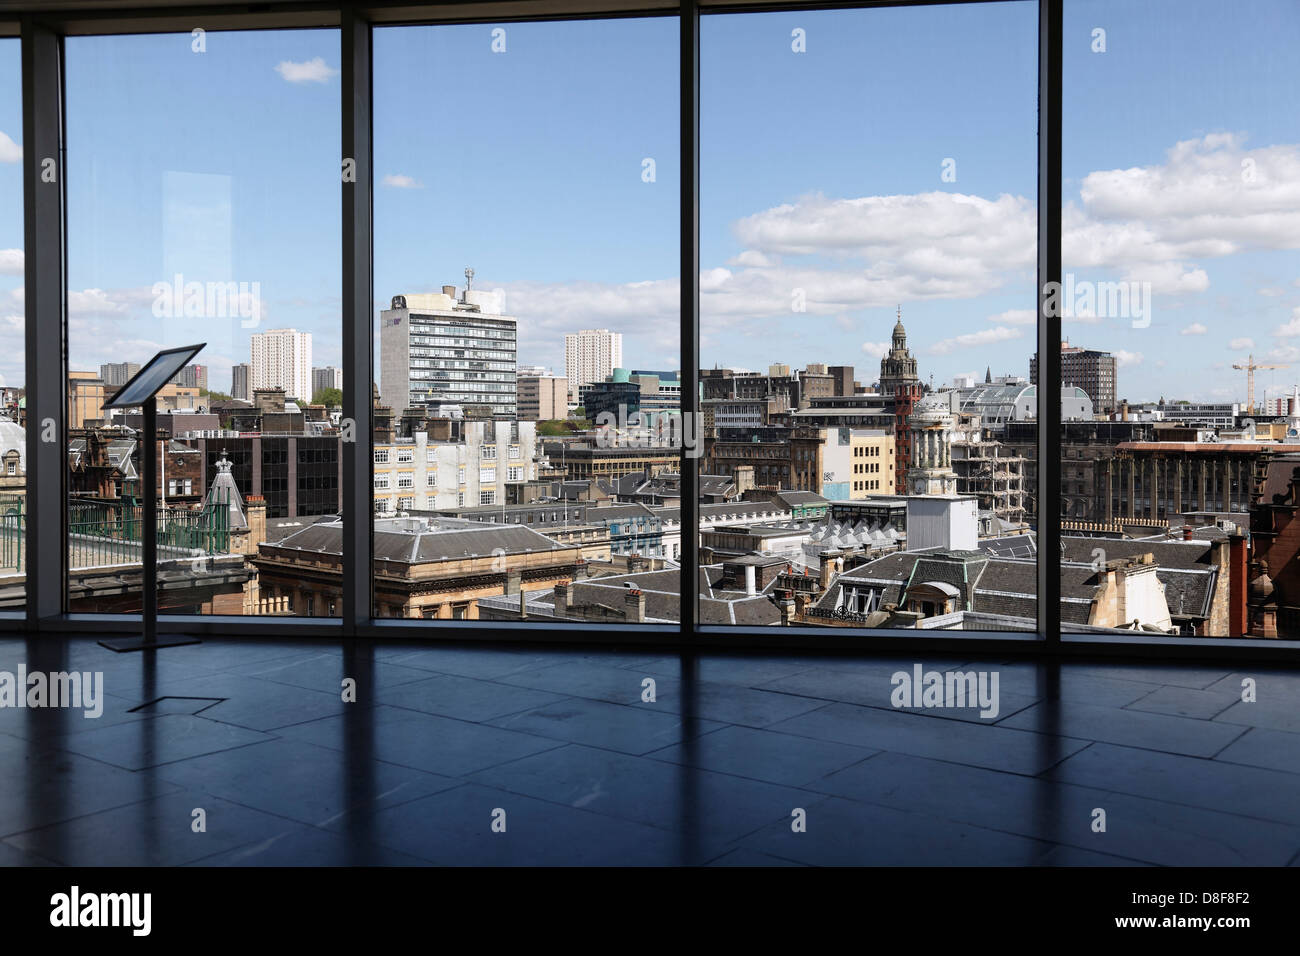 View North East over Glasgow city centre from the viewing platform in the Lighthouse building, Scotland, UK - Stock Image